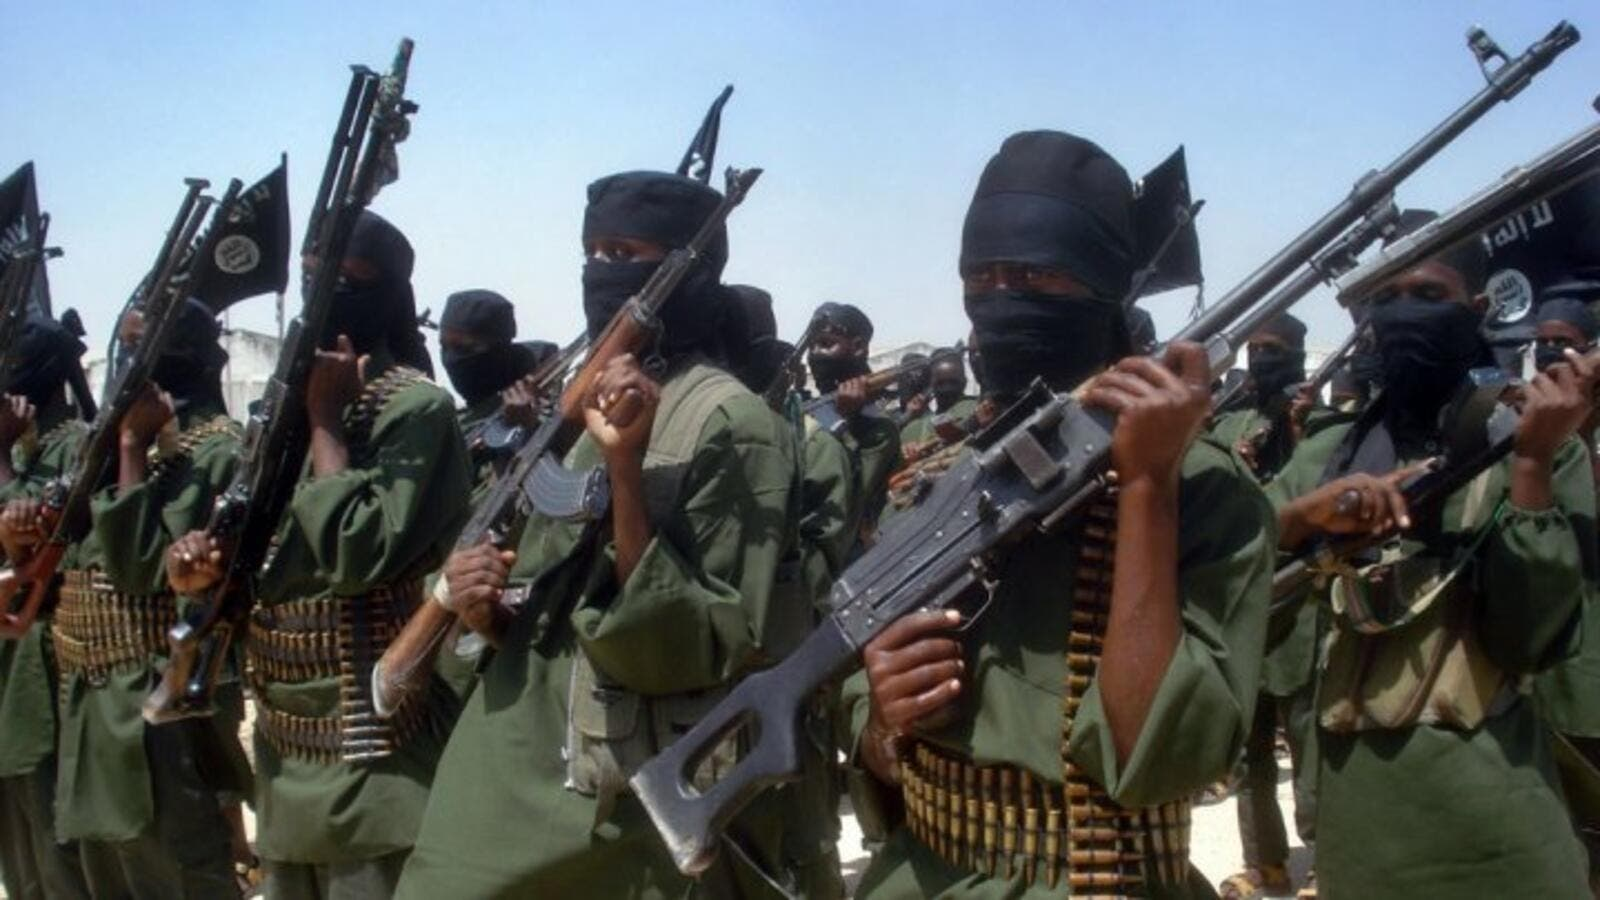 Somalia's ministers were attacked by jihadist group al-Shabaab Friday. (AFP/File)